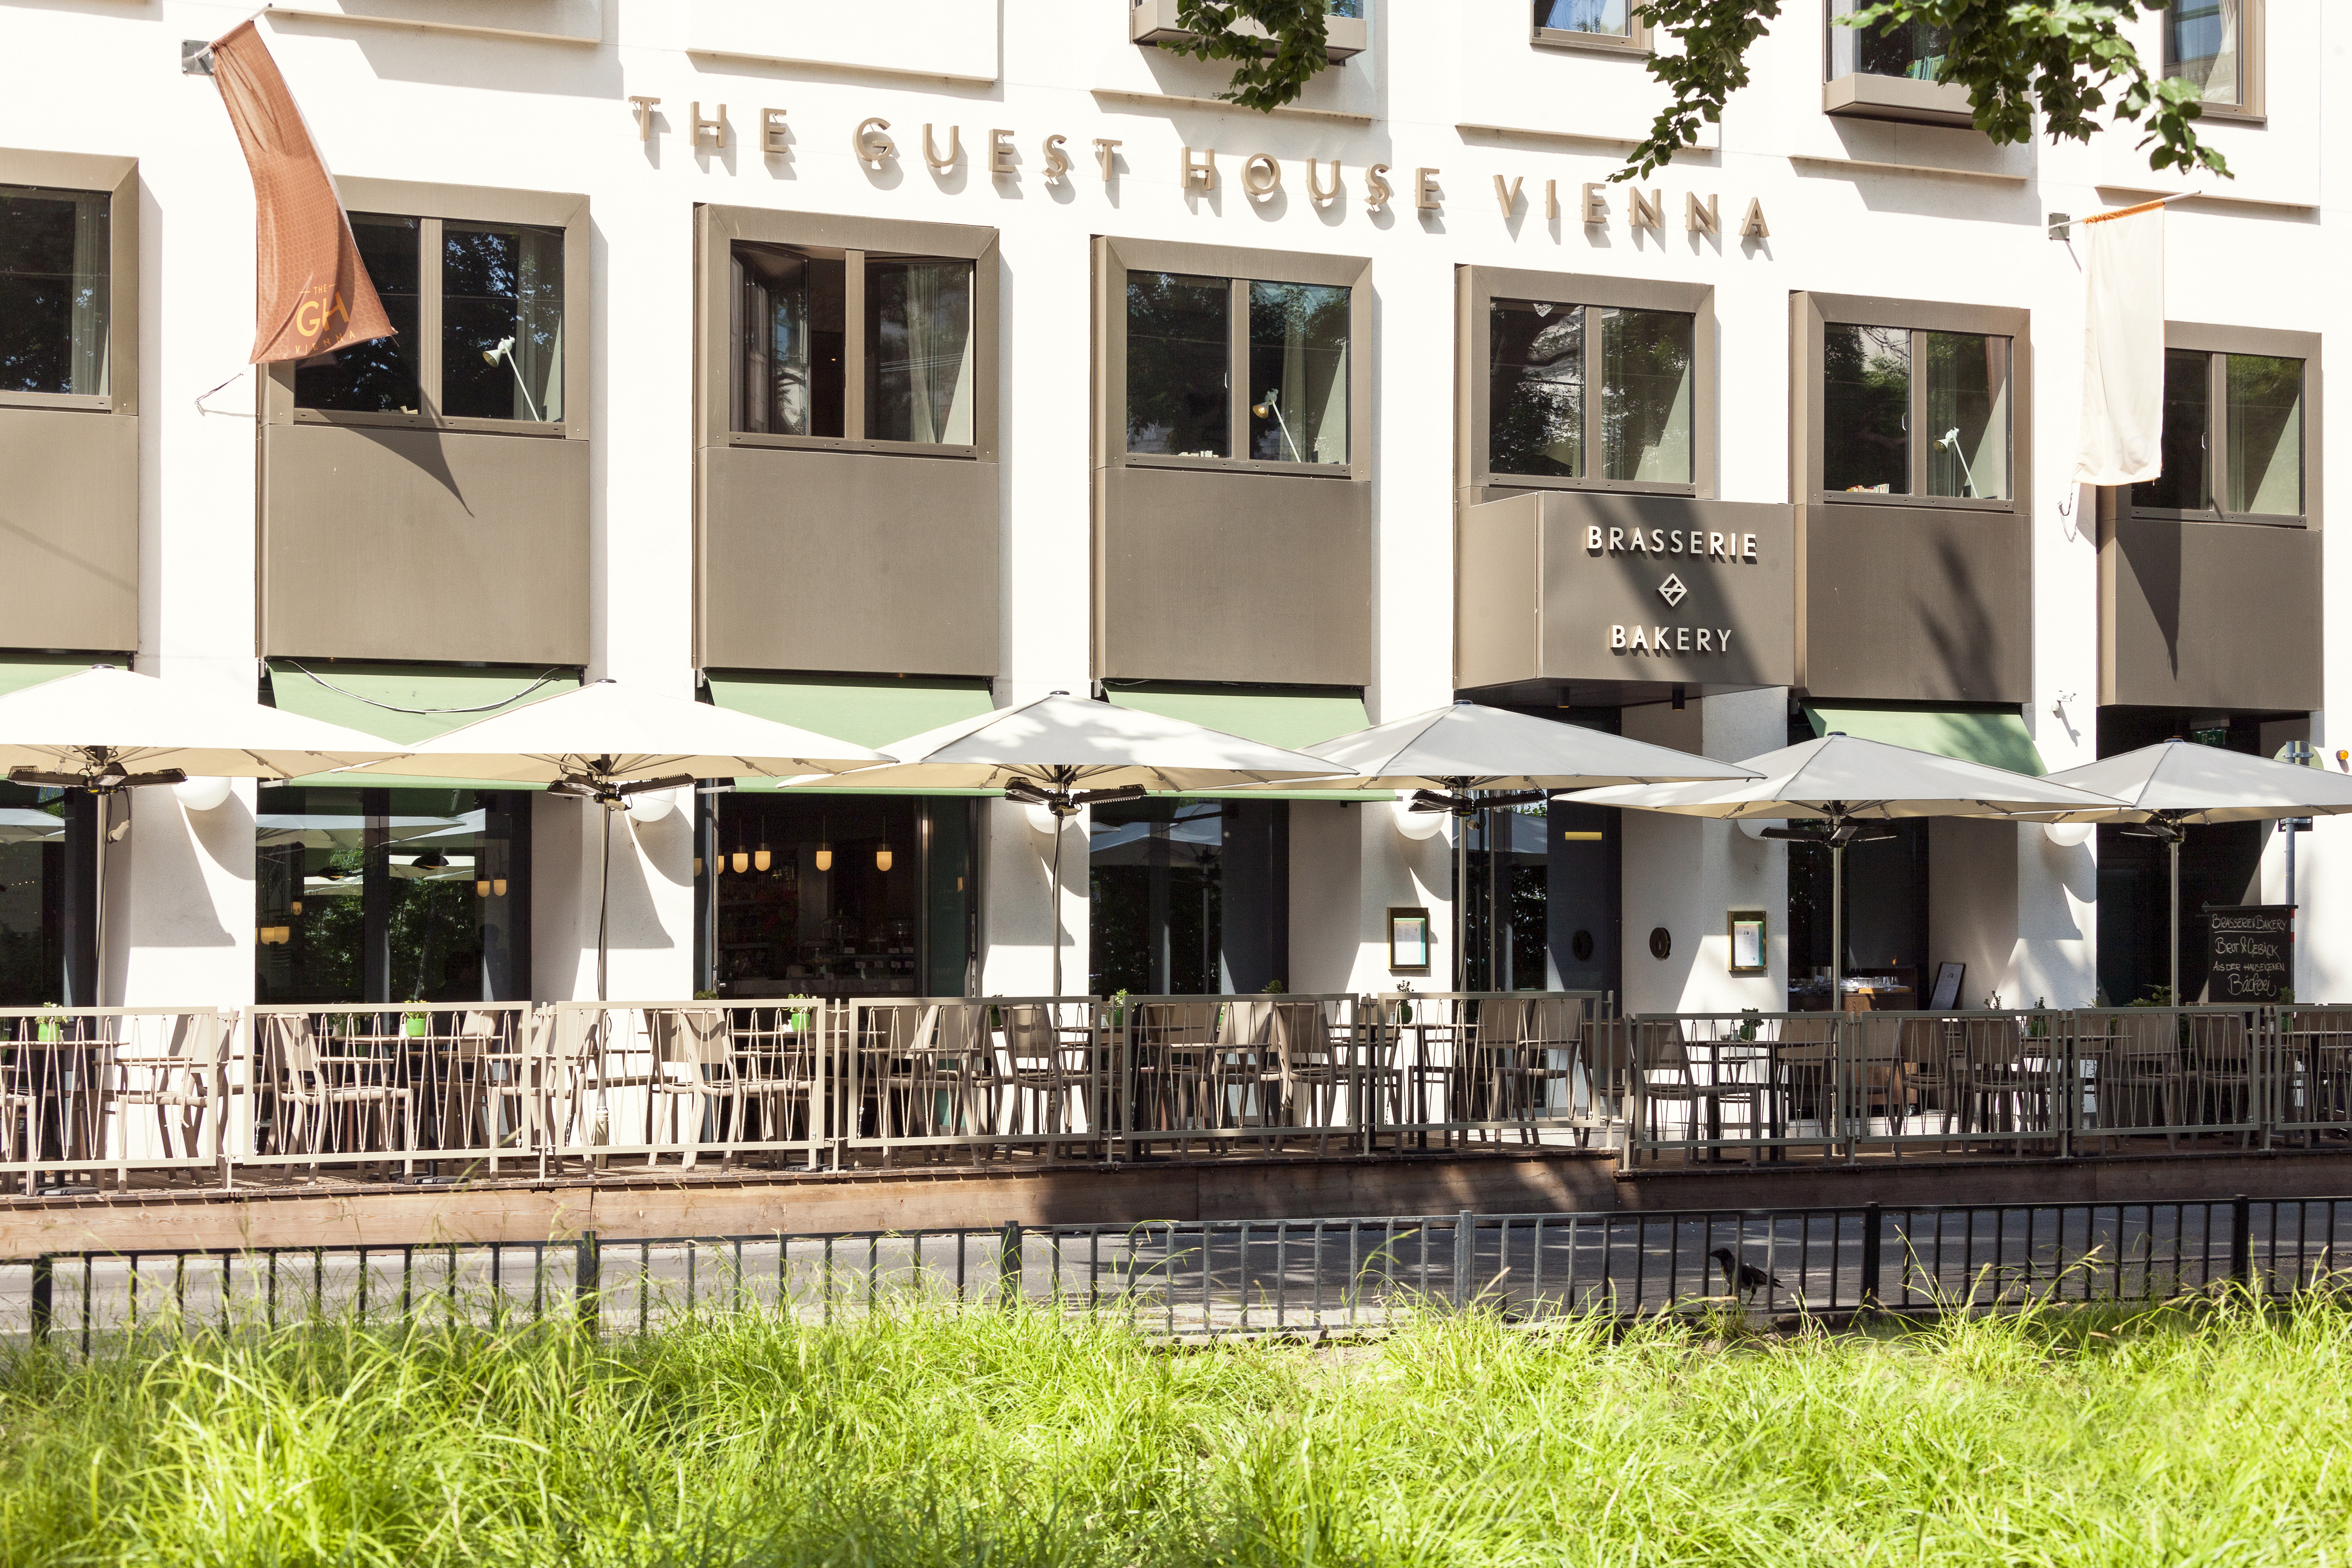 093-ds-guesthousevienna